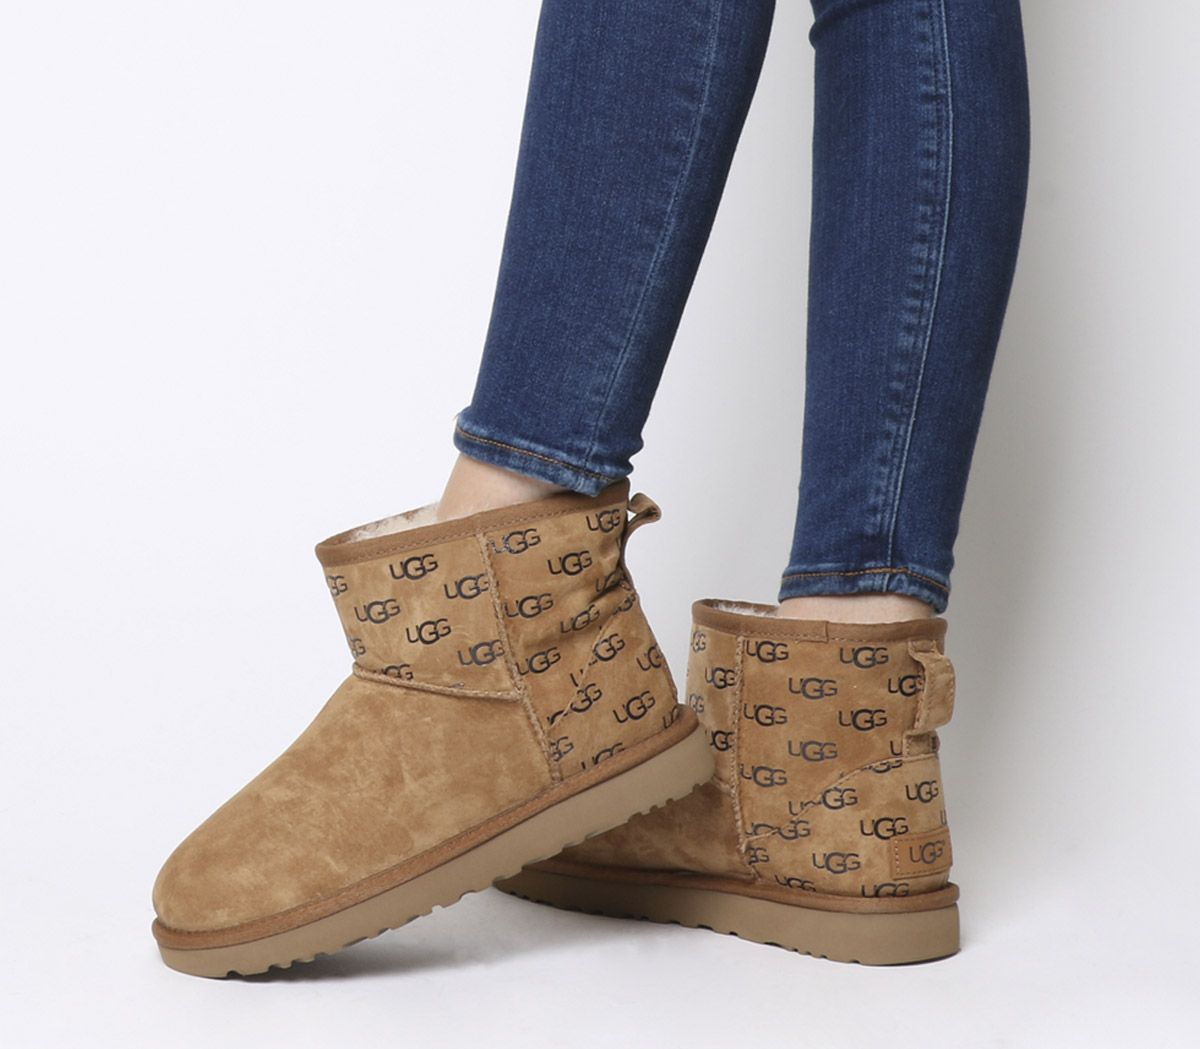 ad7f1c49d5f1 UGG Classic Mini II Logo Exclusive Boots Chestnut Logo - Ankle Boots